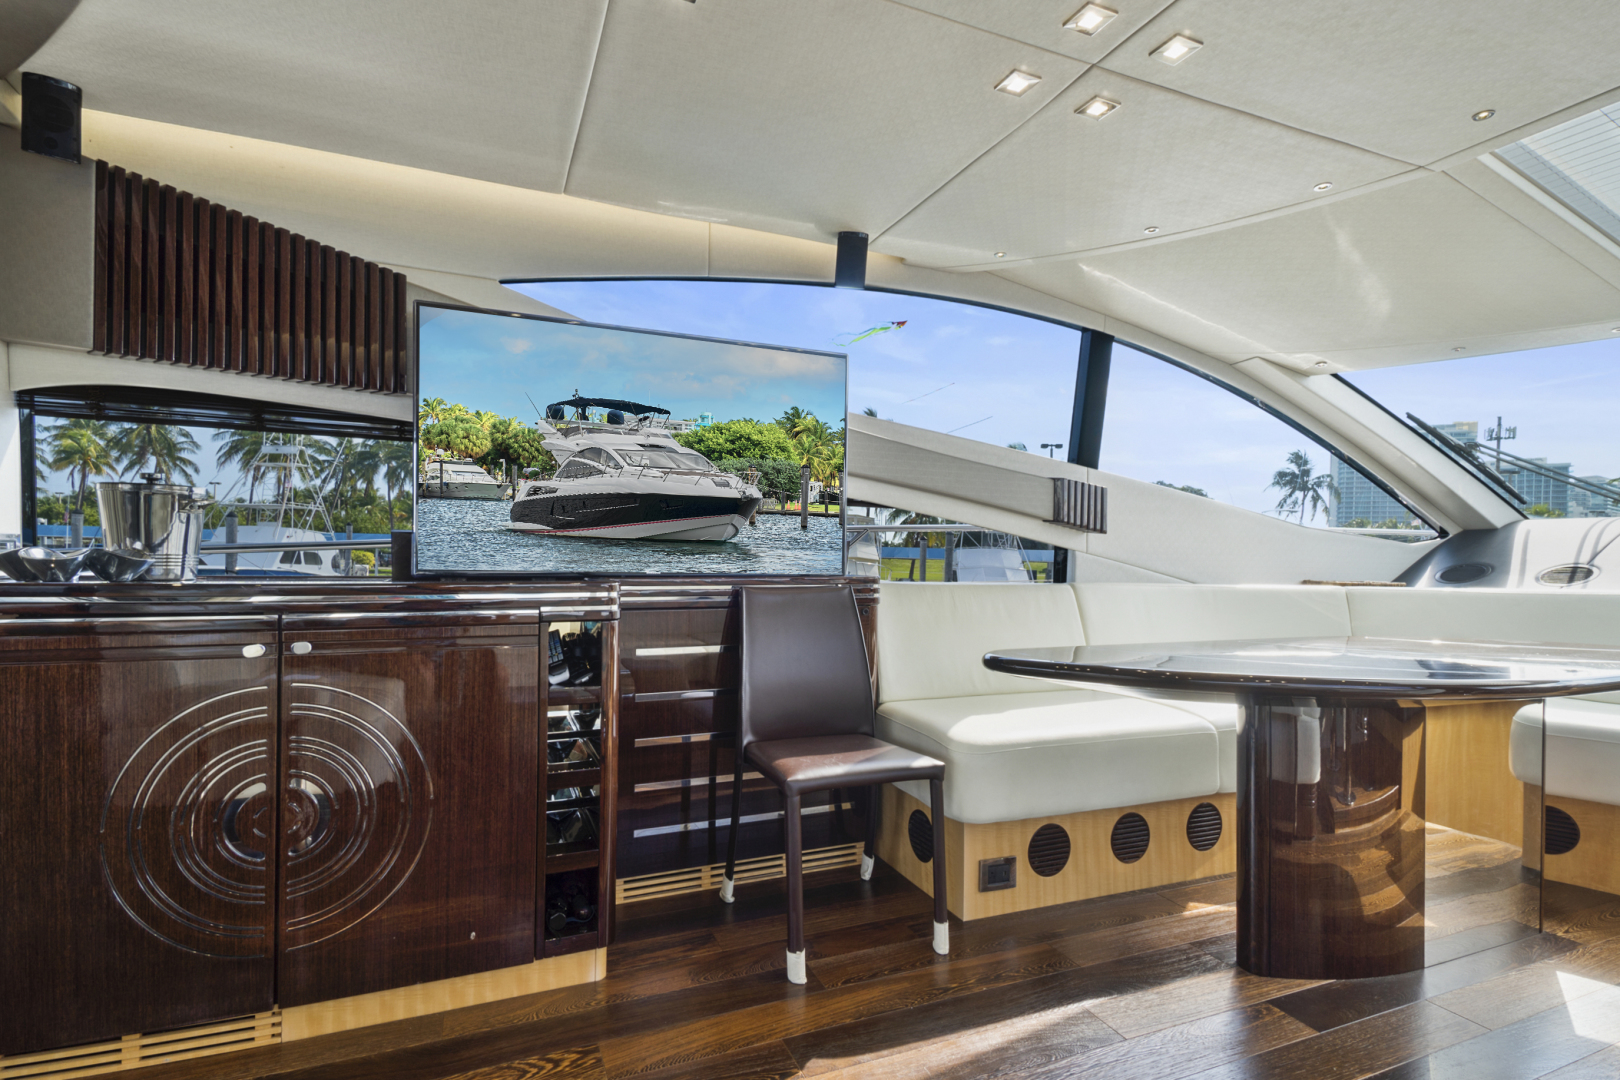 Sunseeker-68 Sport Yacht 2014-New Page Miami Beach-Florida-United States-1581203 | Thumbnail